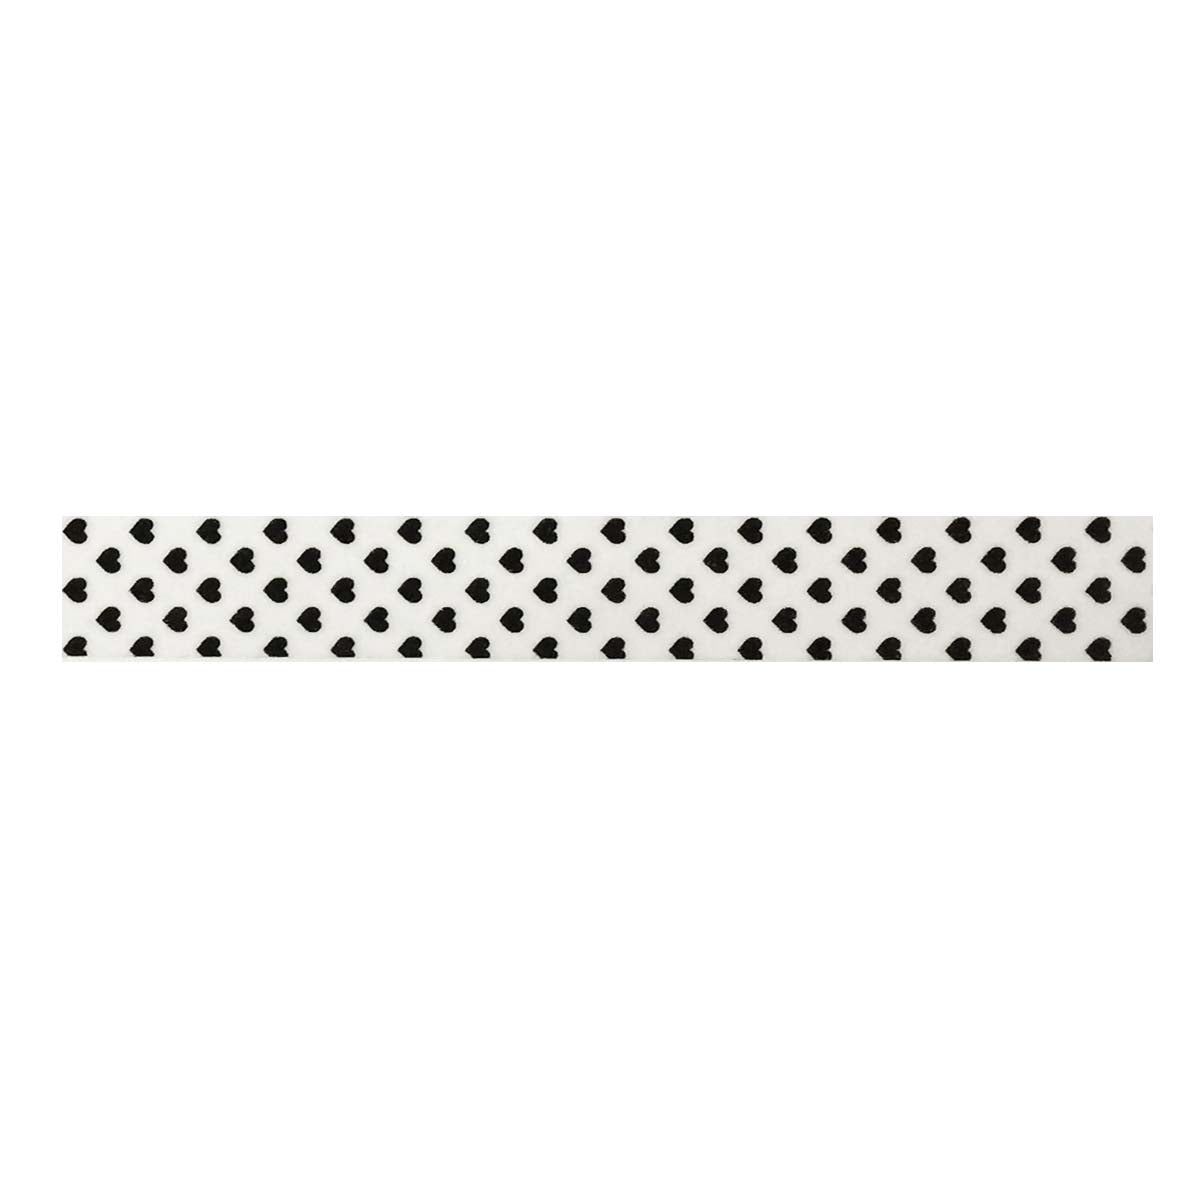 Wrapables Washi Masking Tape, Dots, Stripes and Stars Group